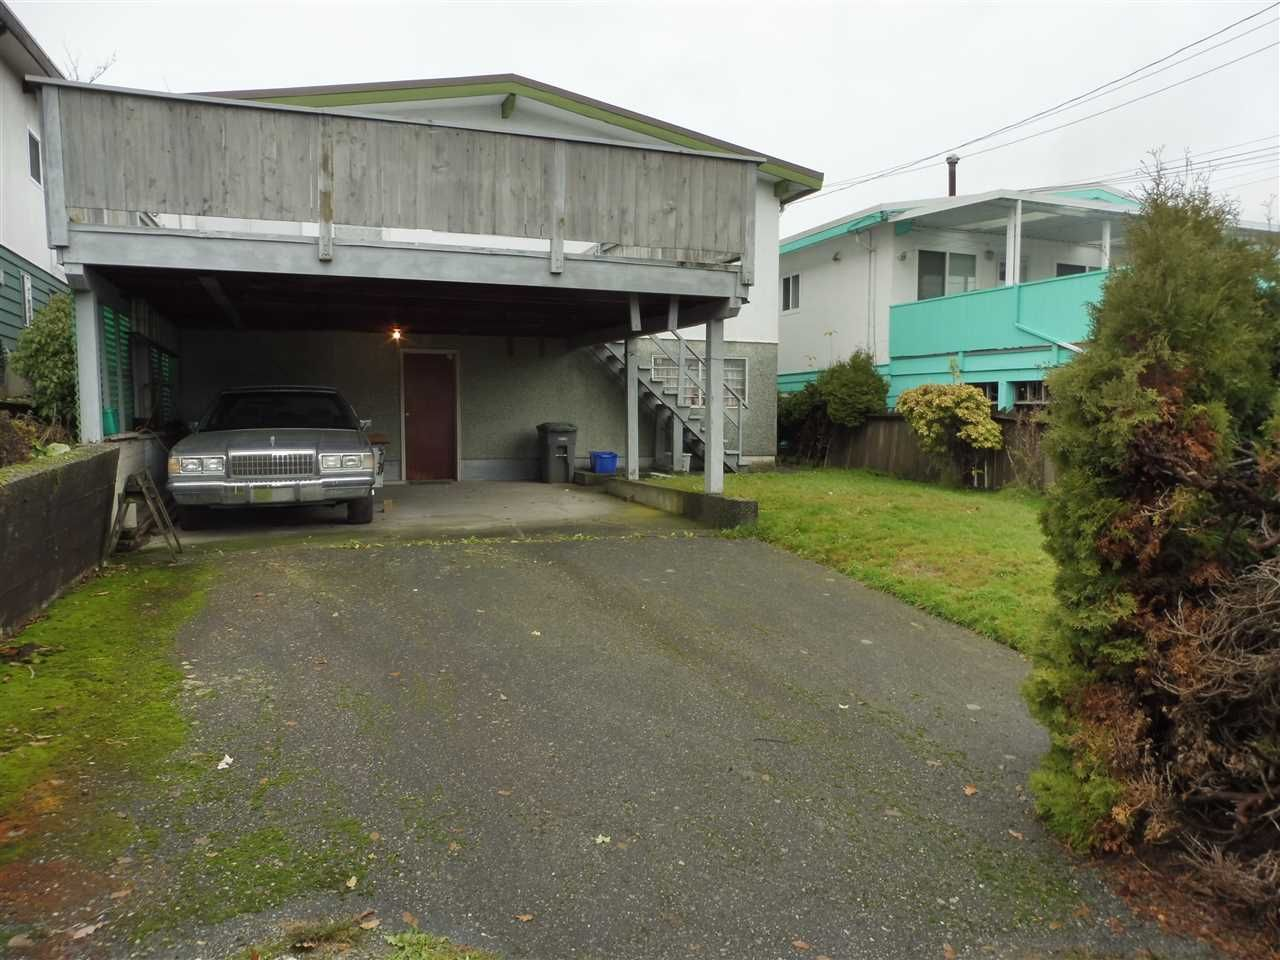 Photo 17: Photos: 4886 COMMERCIAL STREET in Vancouver: Victoria VE House for sale (Vancouver East)  : MLS®# R2228818